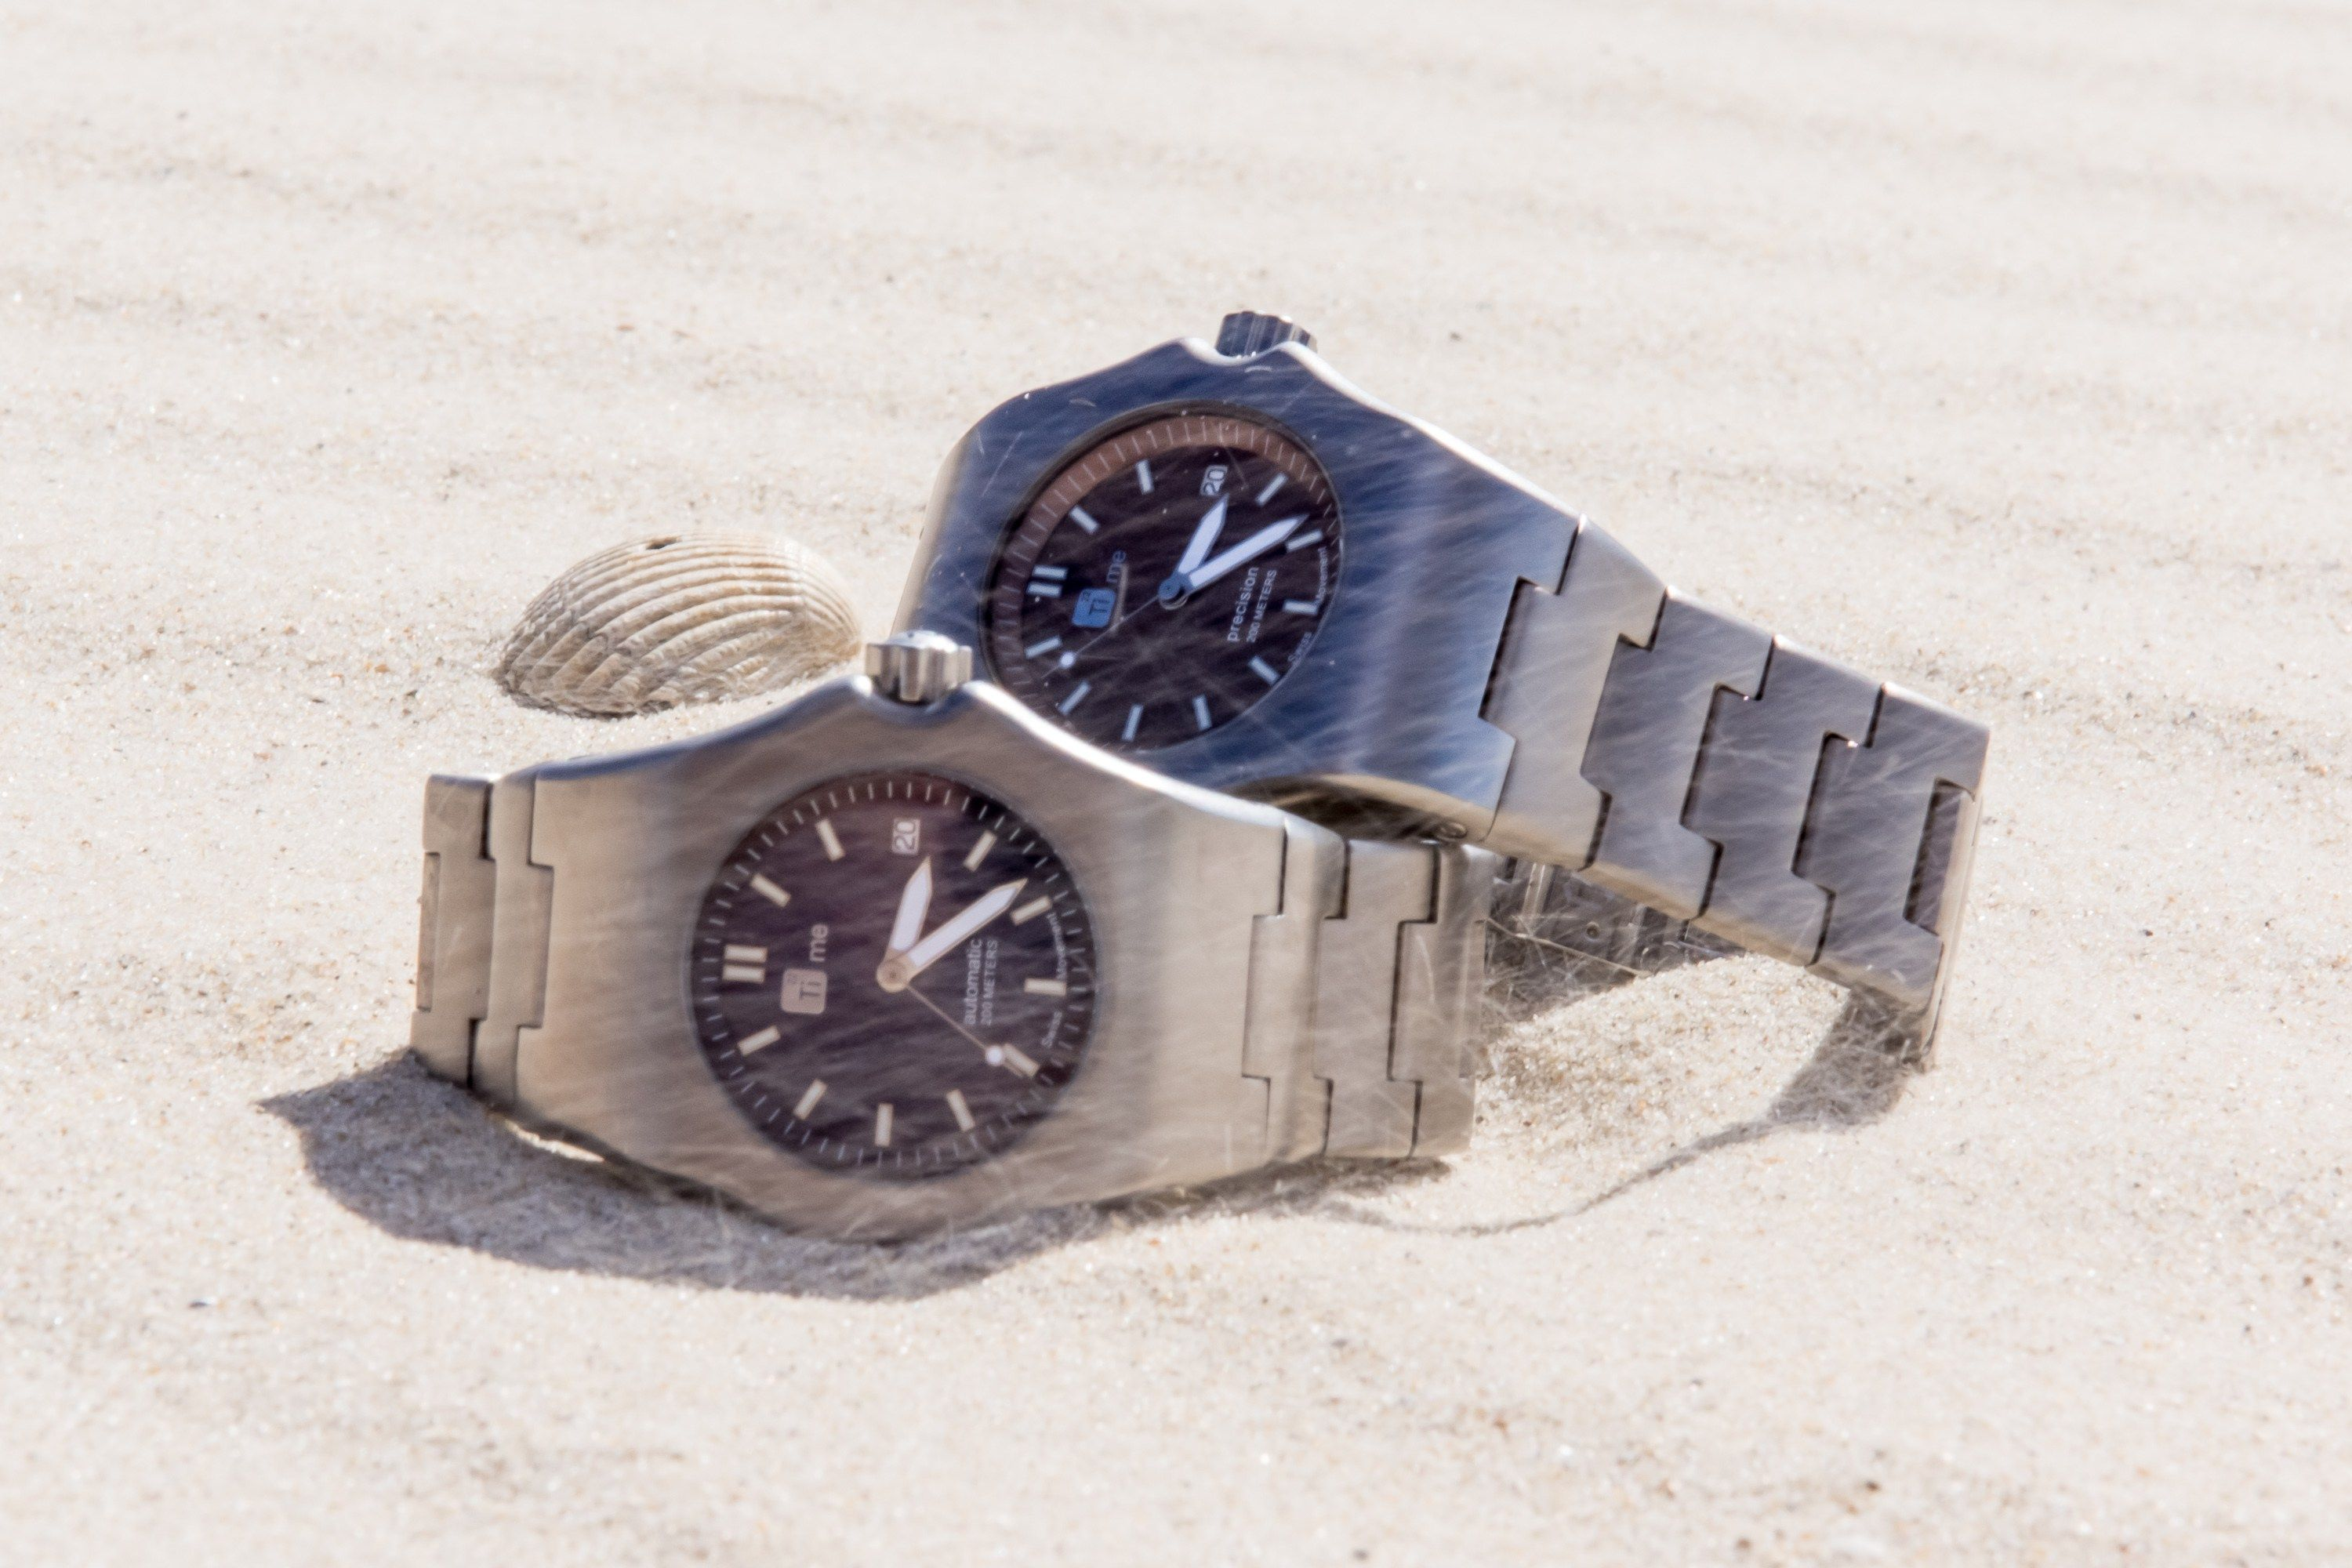 Robusto:+The+Strongest+Watch+Made+From+Titanium+By+TIME22